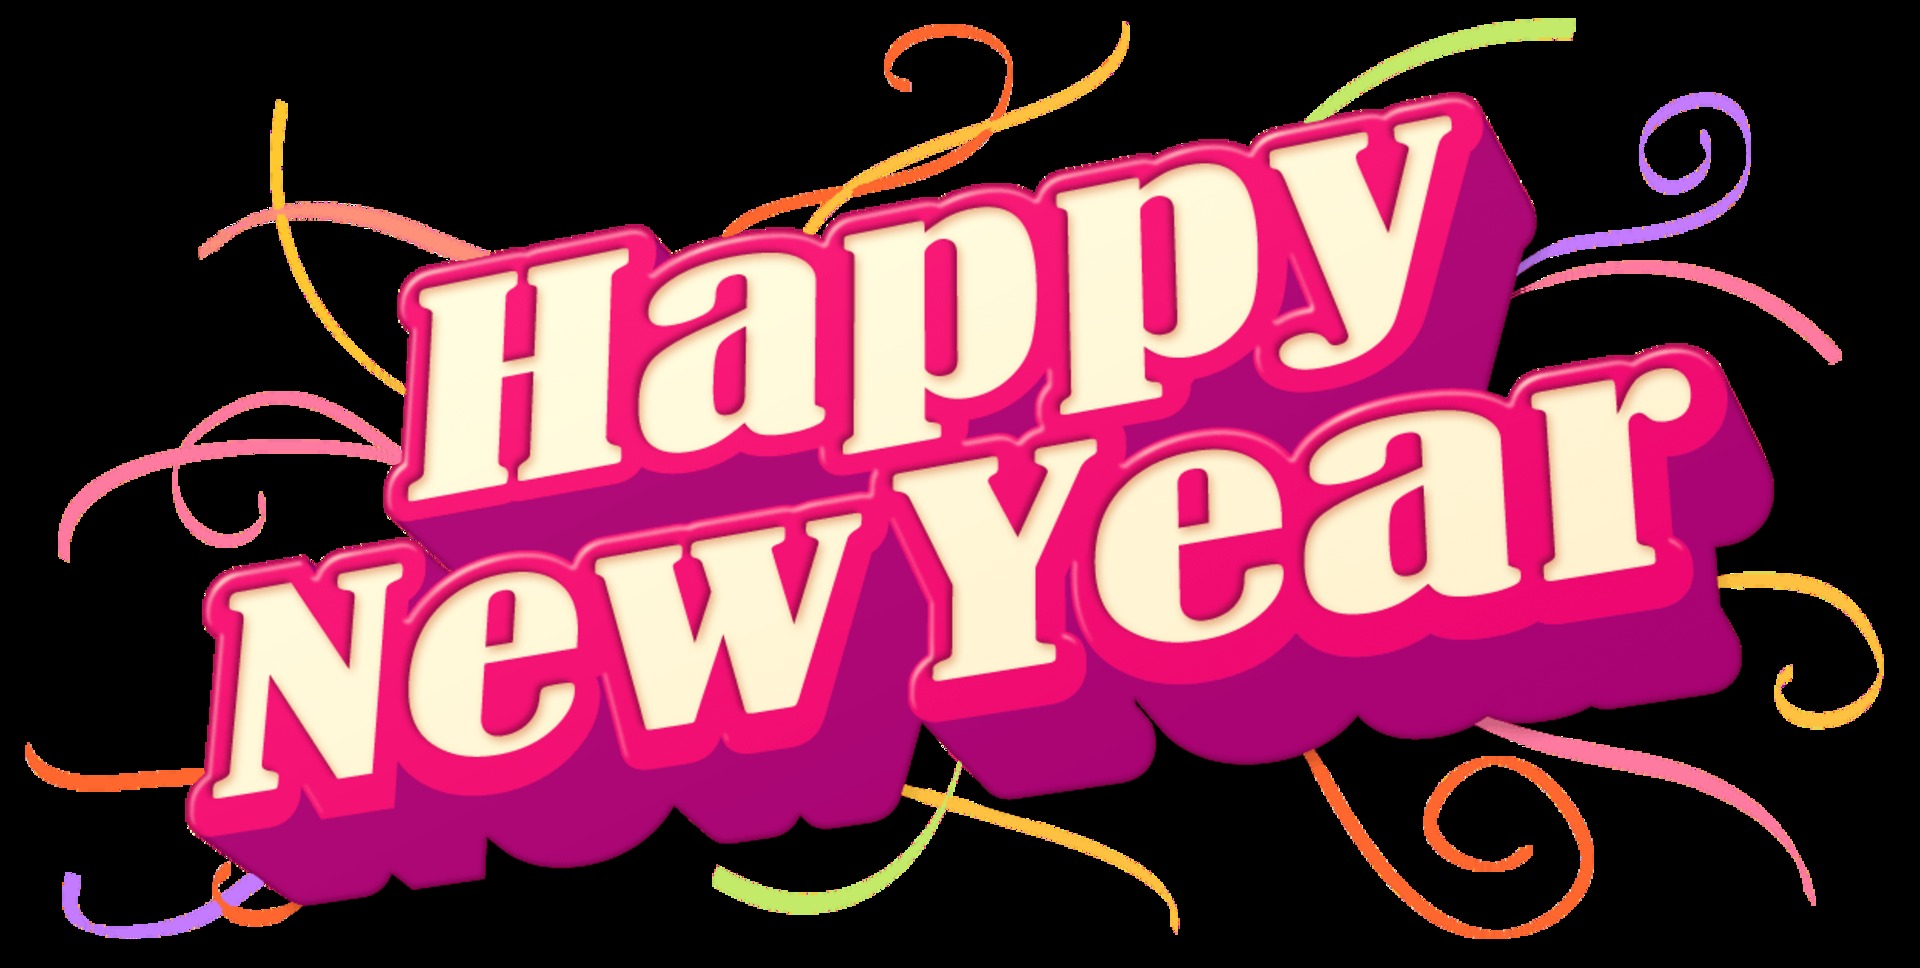 Happy New Year Wishes & Text Messages to Wish New Year image